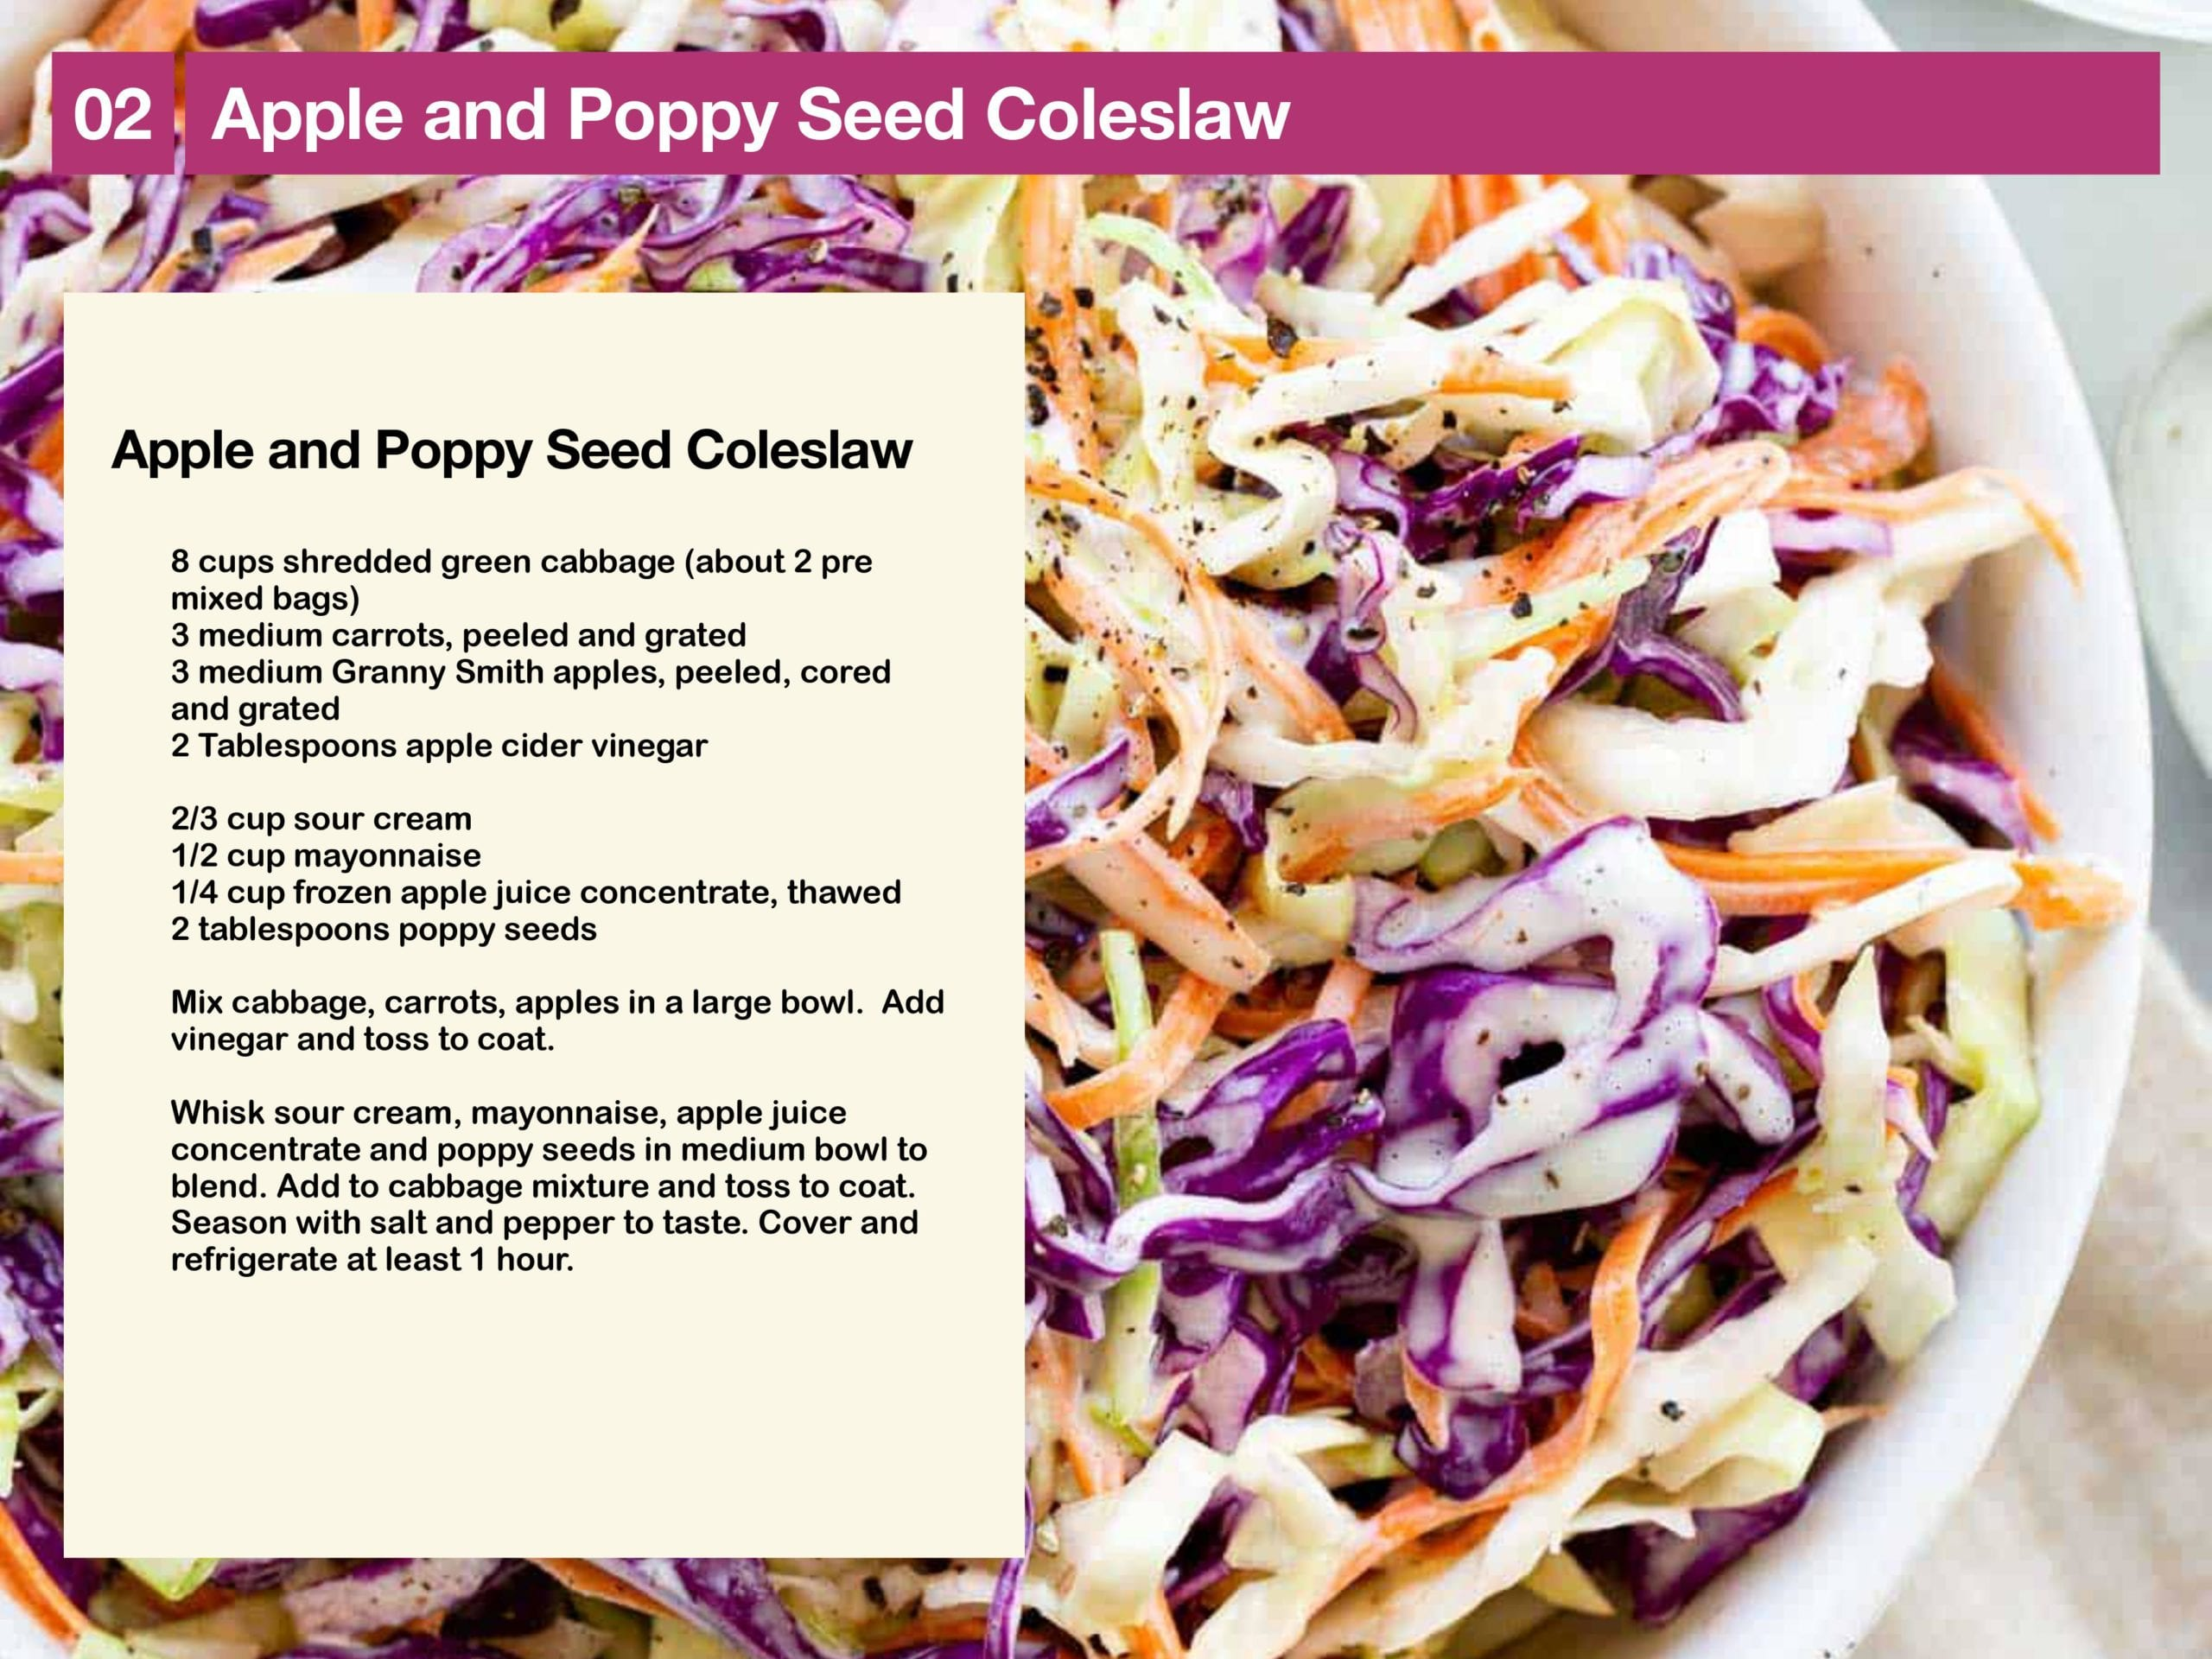 Apple and Poppy Seed Coleslaw Recipe